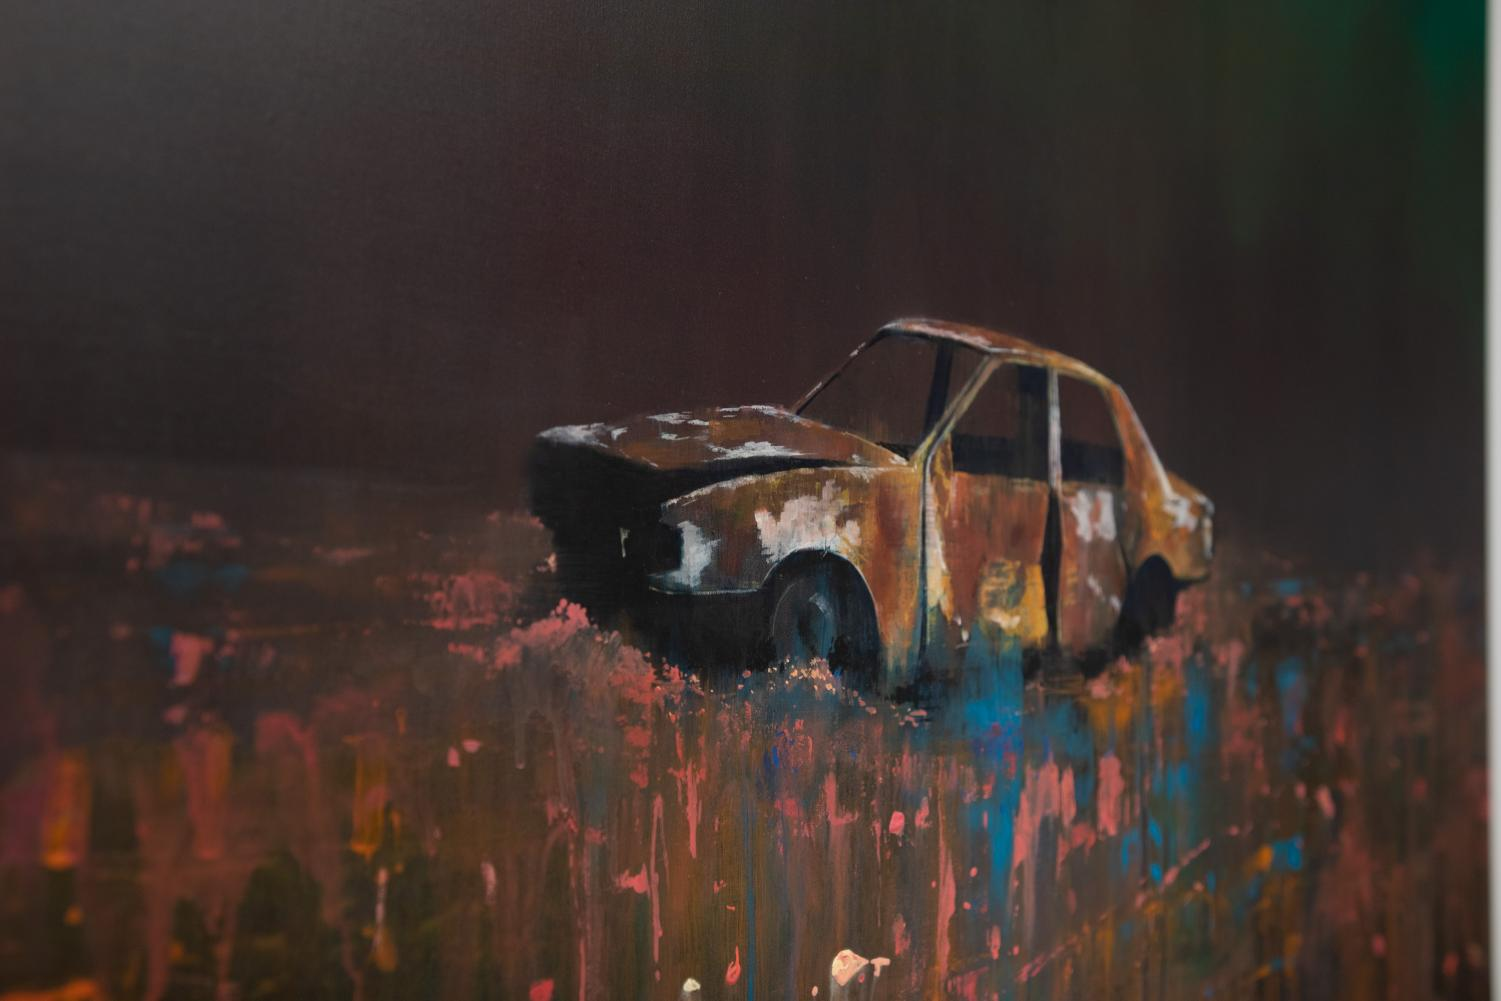 Nick+Archer.+White+Car%2C+2018.+Oil+and+acrylic+on+canvas%2C+58+x+45+inches.